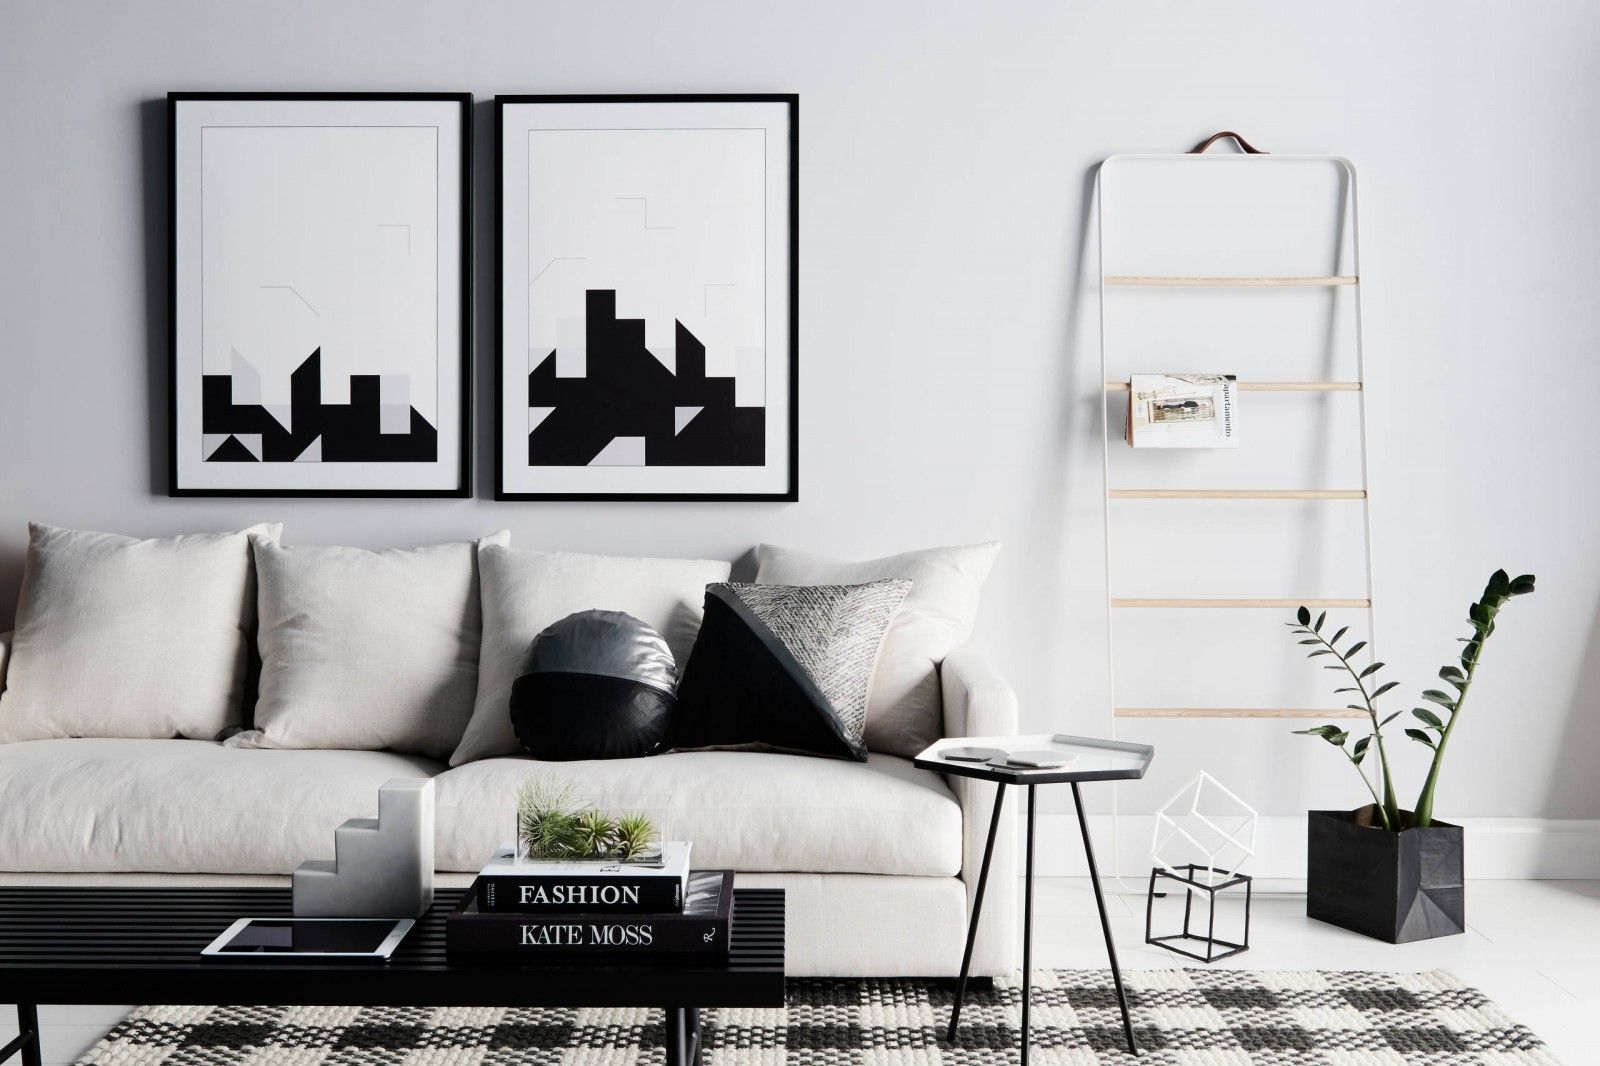 Living room with black and white pictures as well as contrasting interior elements